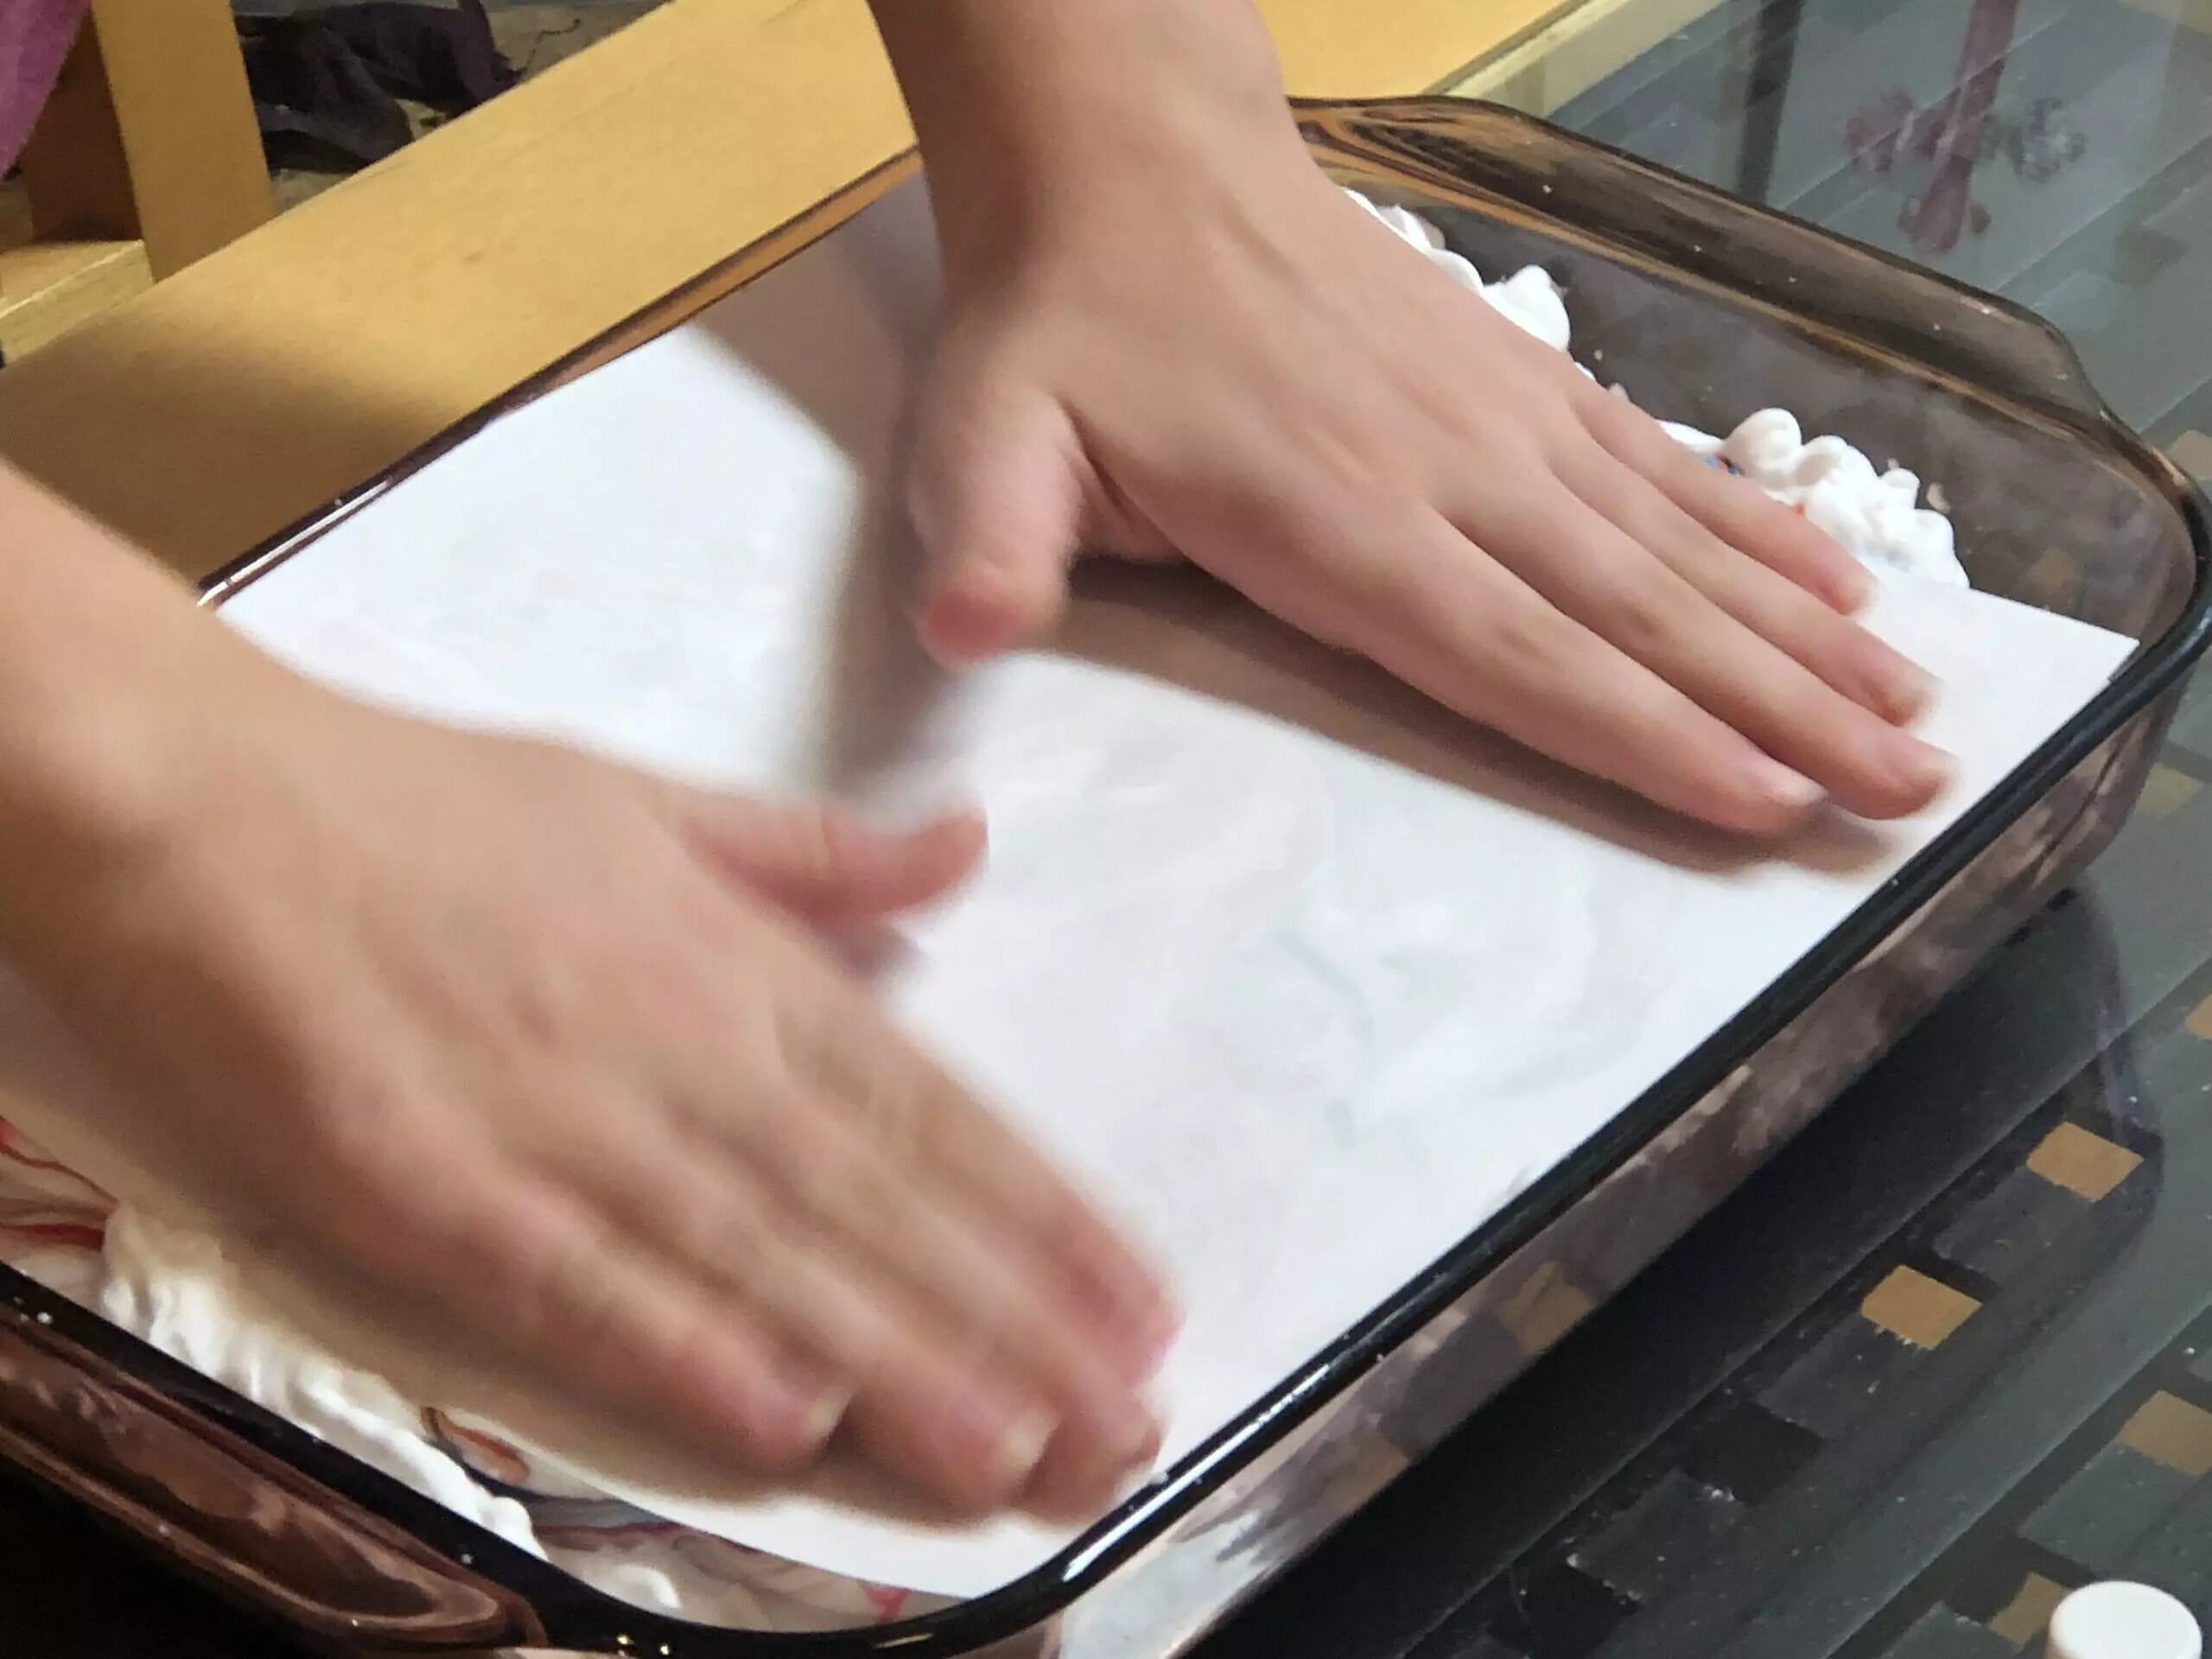 With the decorated side of the paper facing down, press gently on the shaving cream.